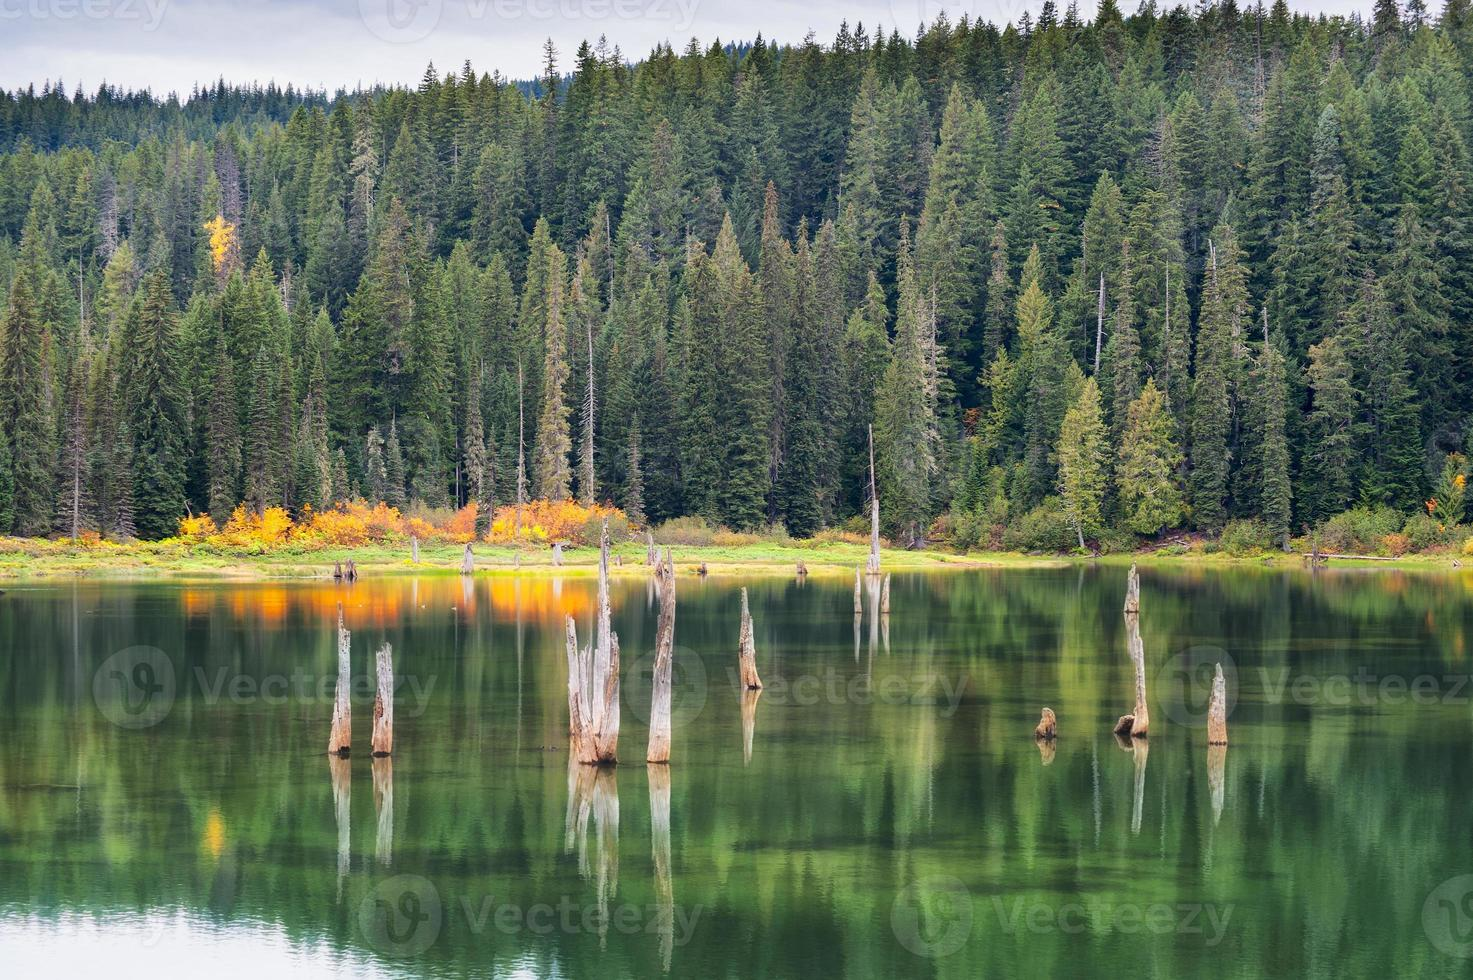 Herbst am Gänsesee Gifford Pinchot National Forest foto